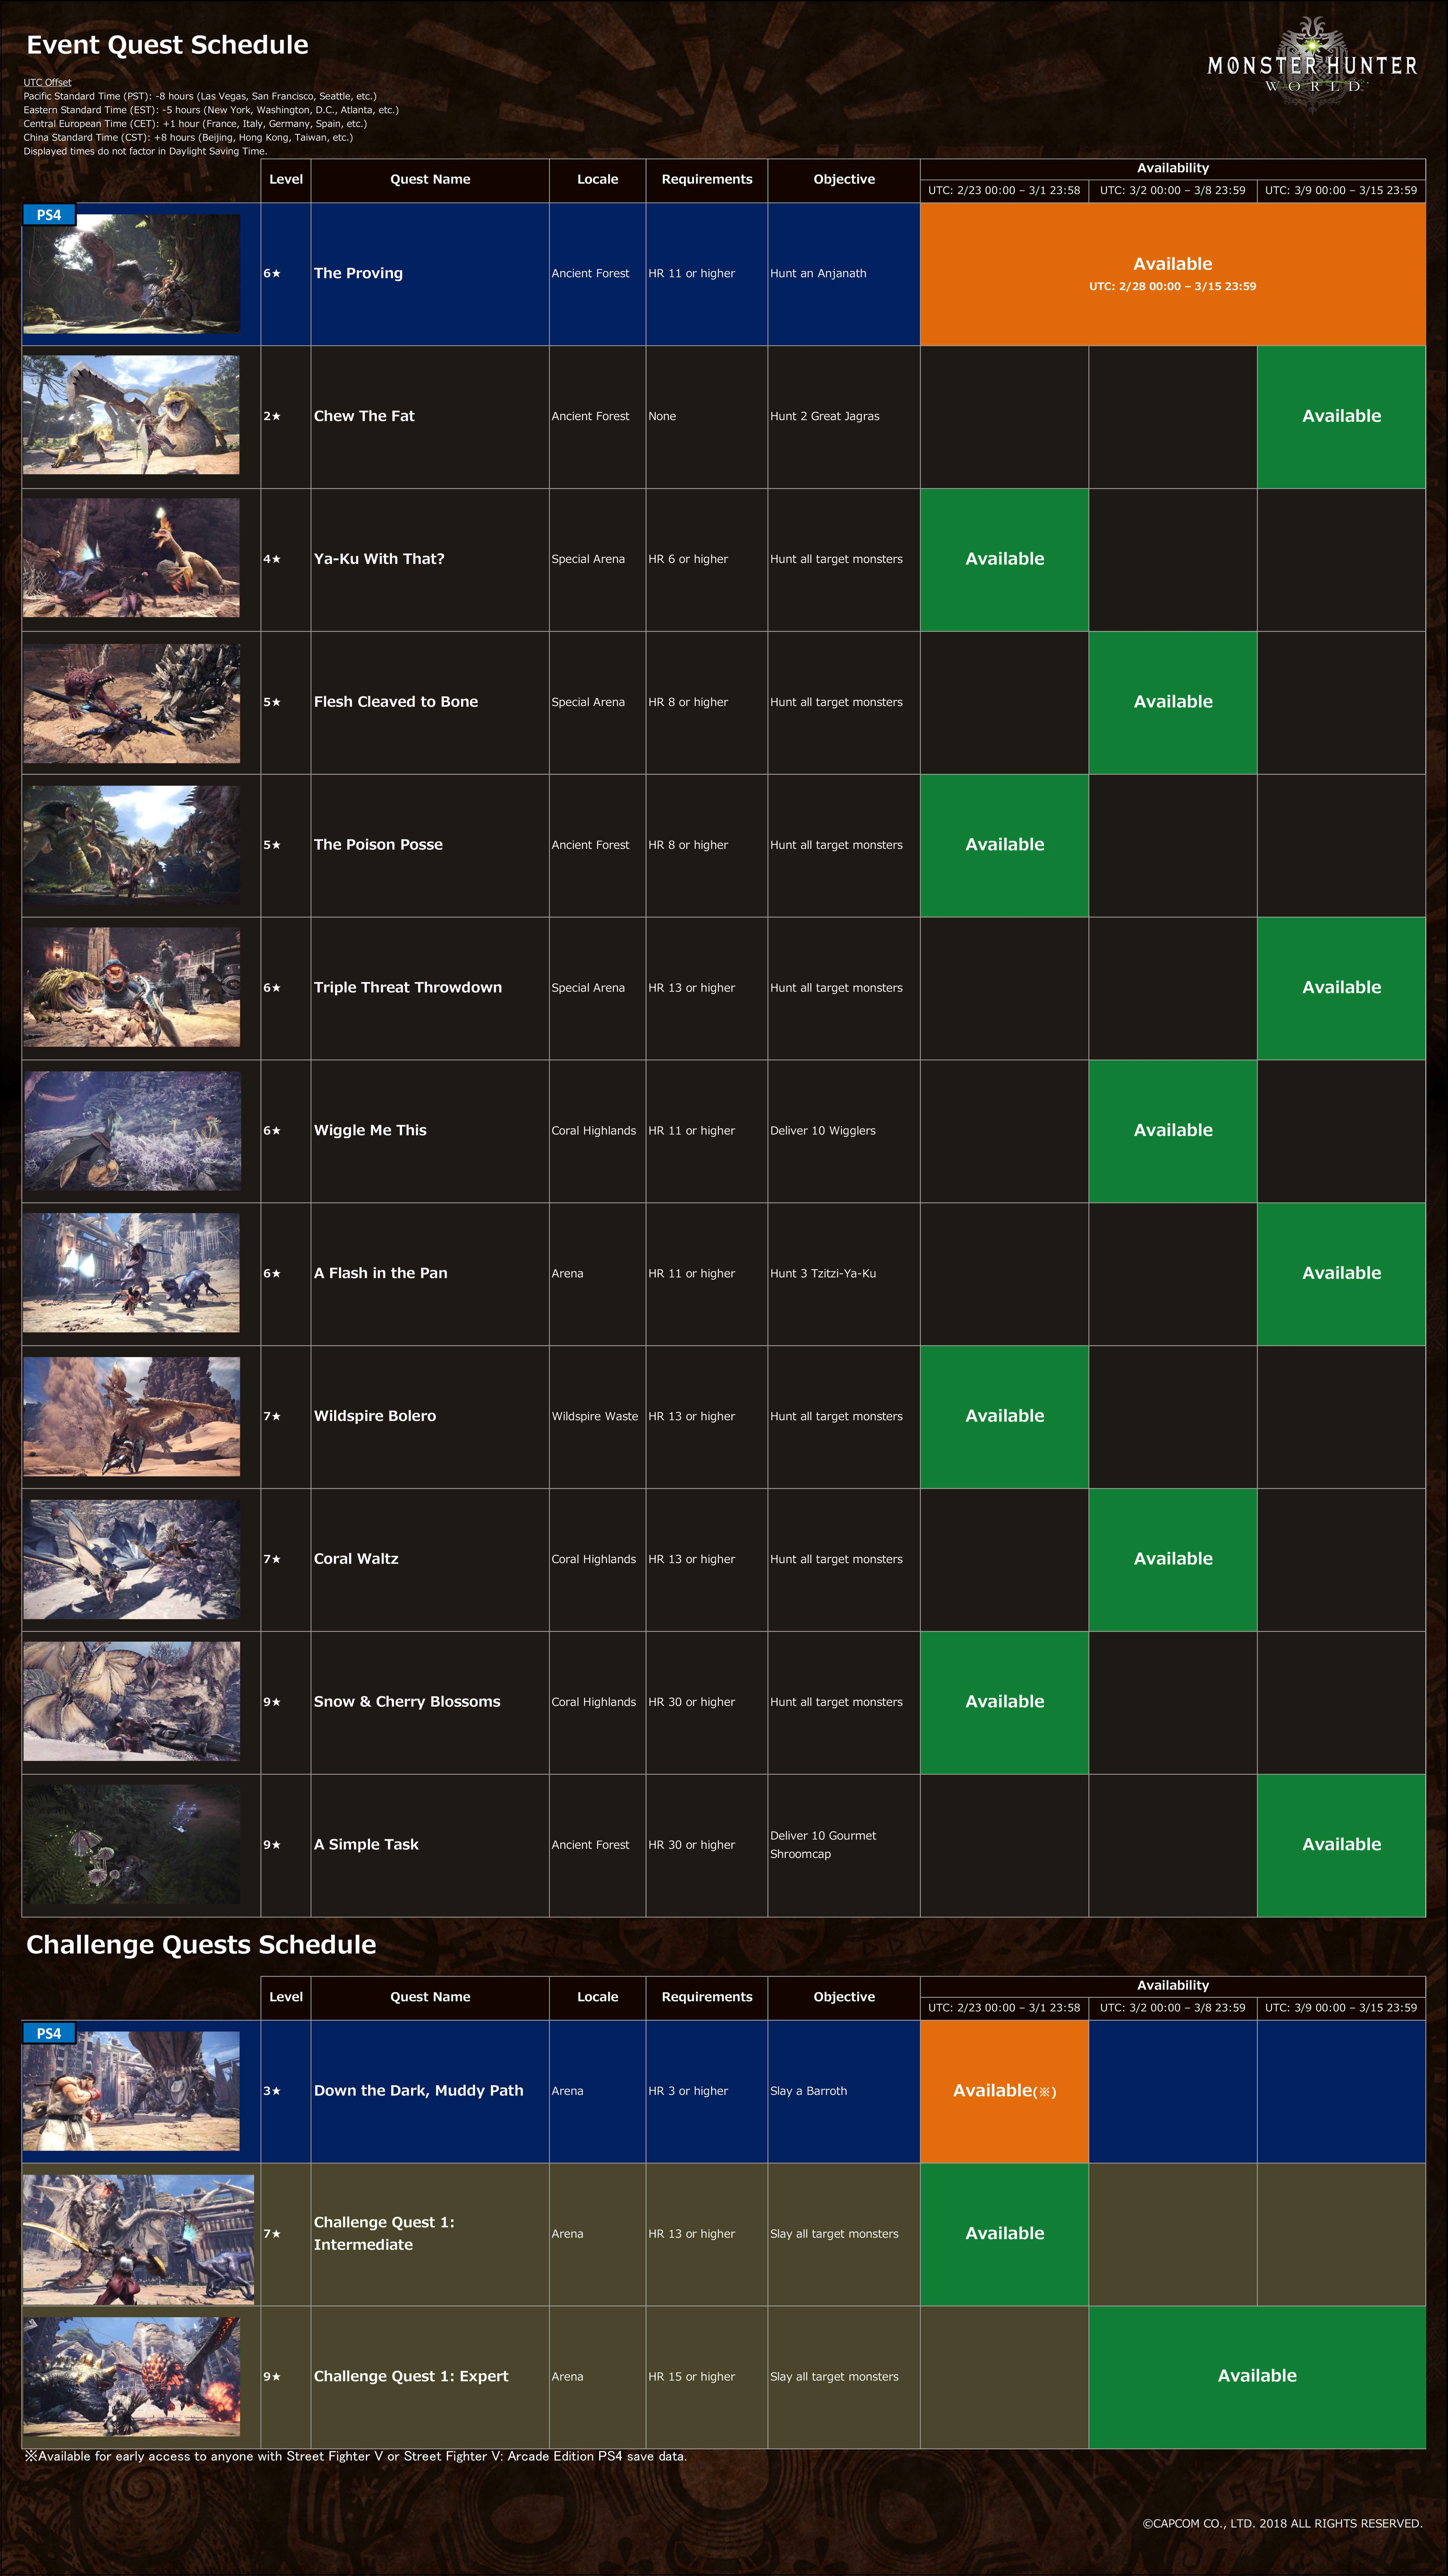 Monster hunter world event schedule guide all the latest for Decoration list monster hunter world